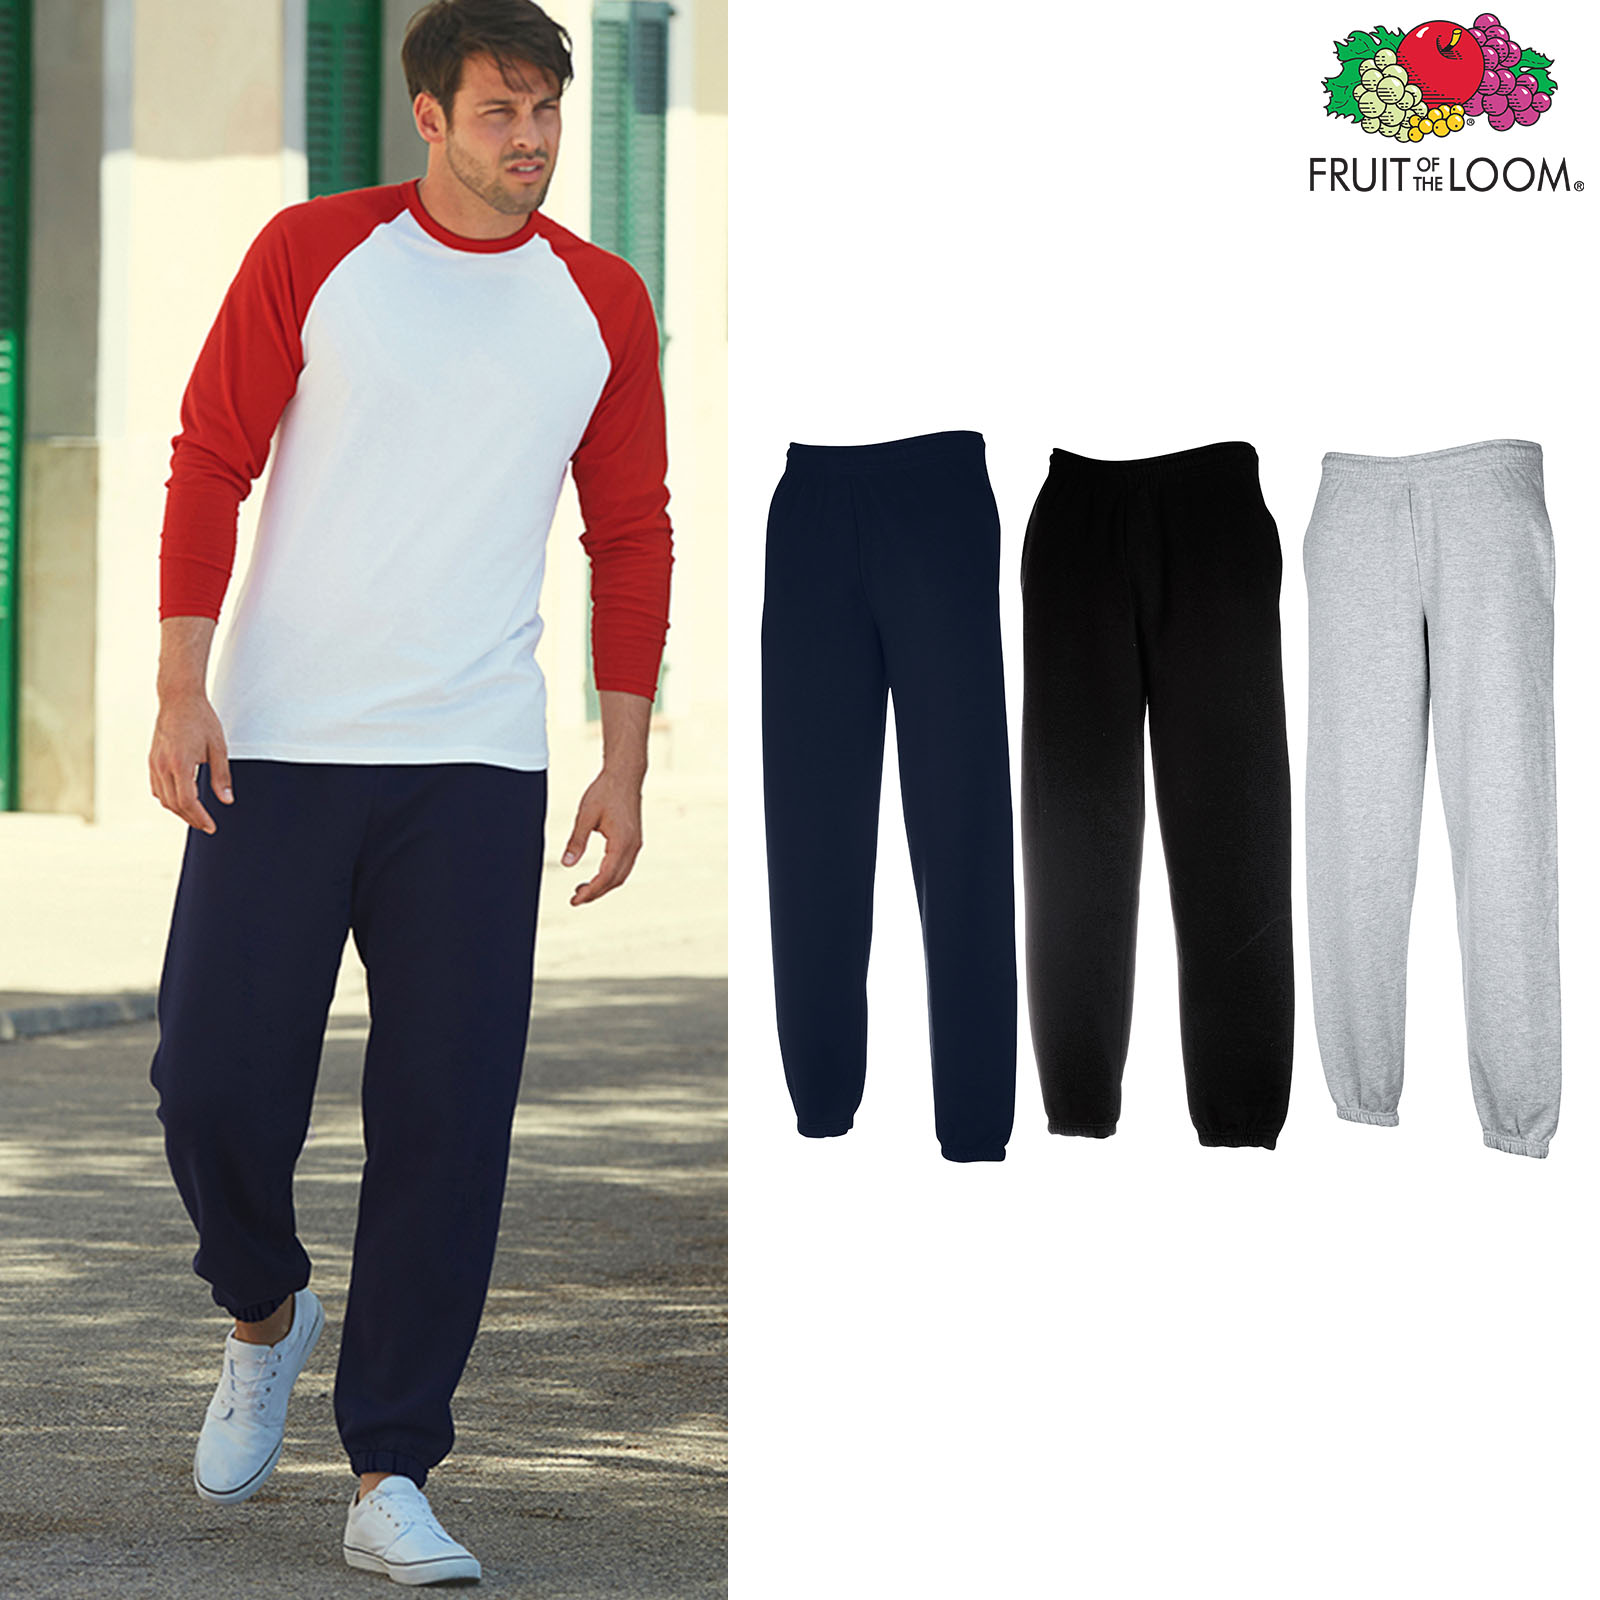 premium elasticated sweatpants men s jogging bottoms